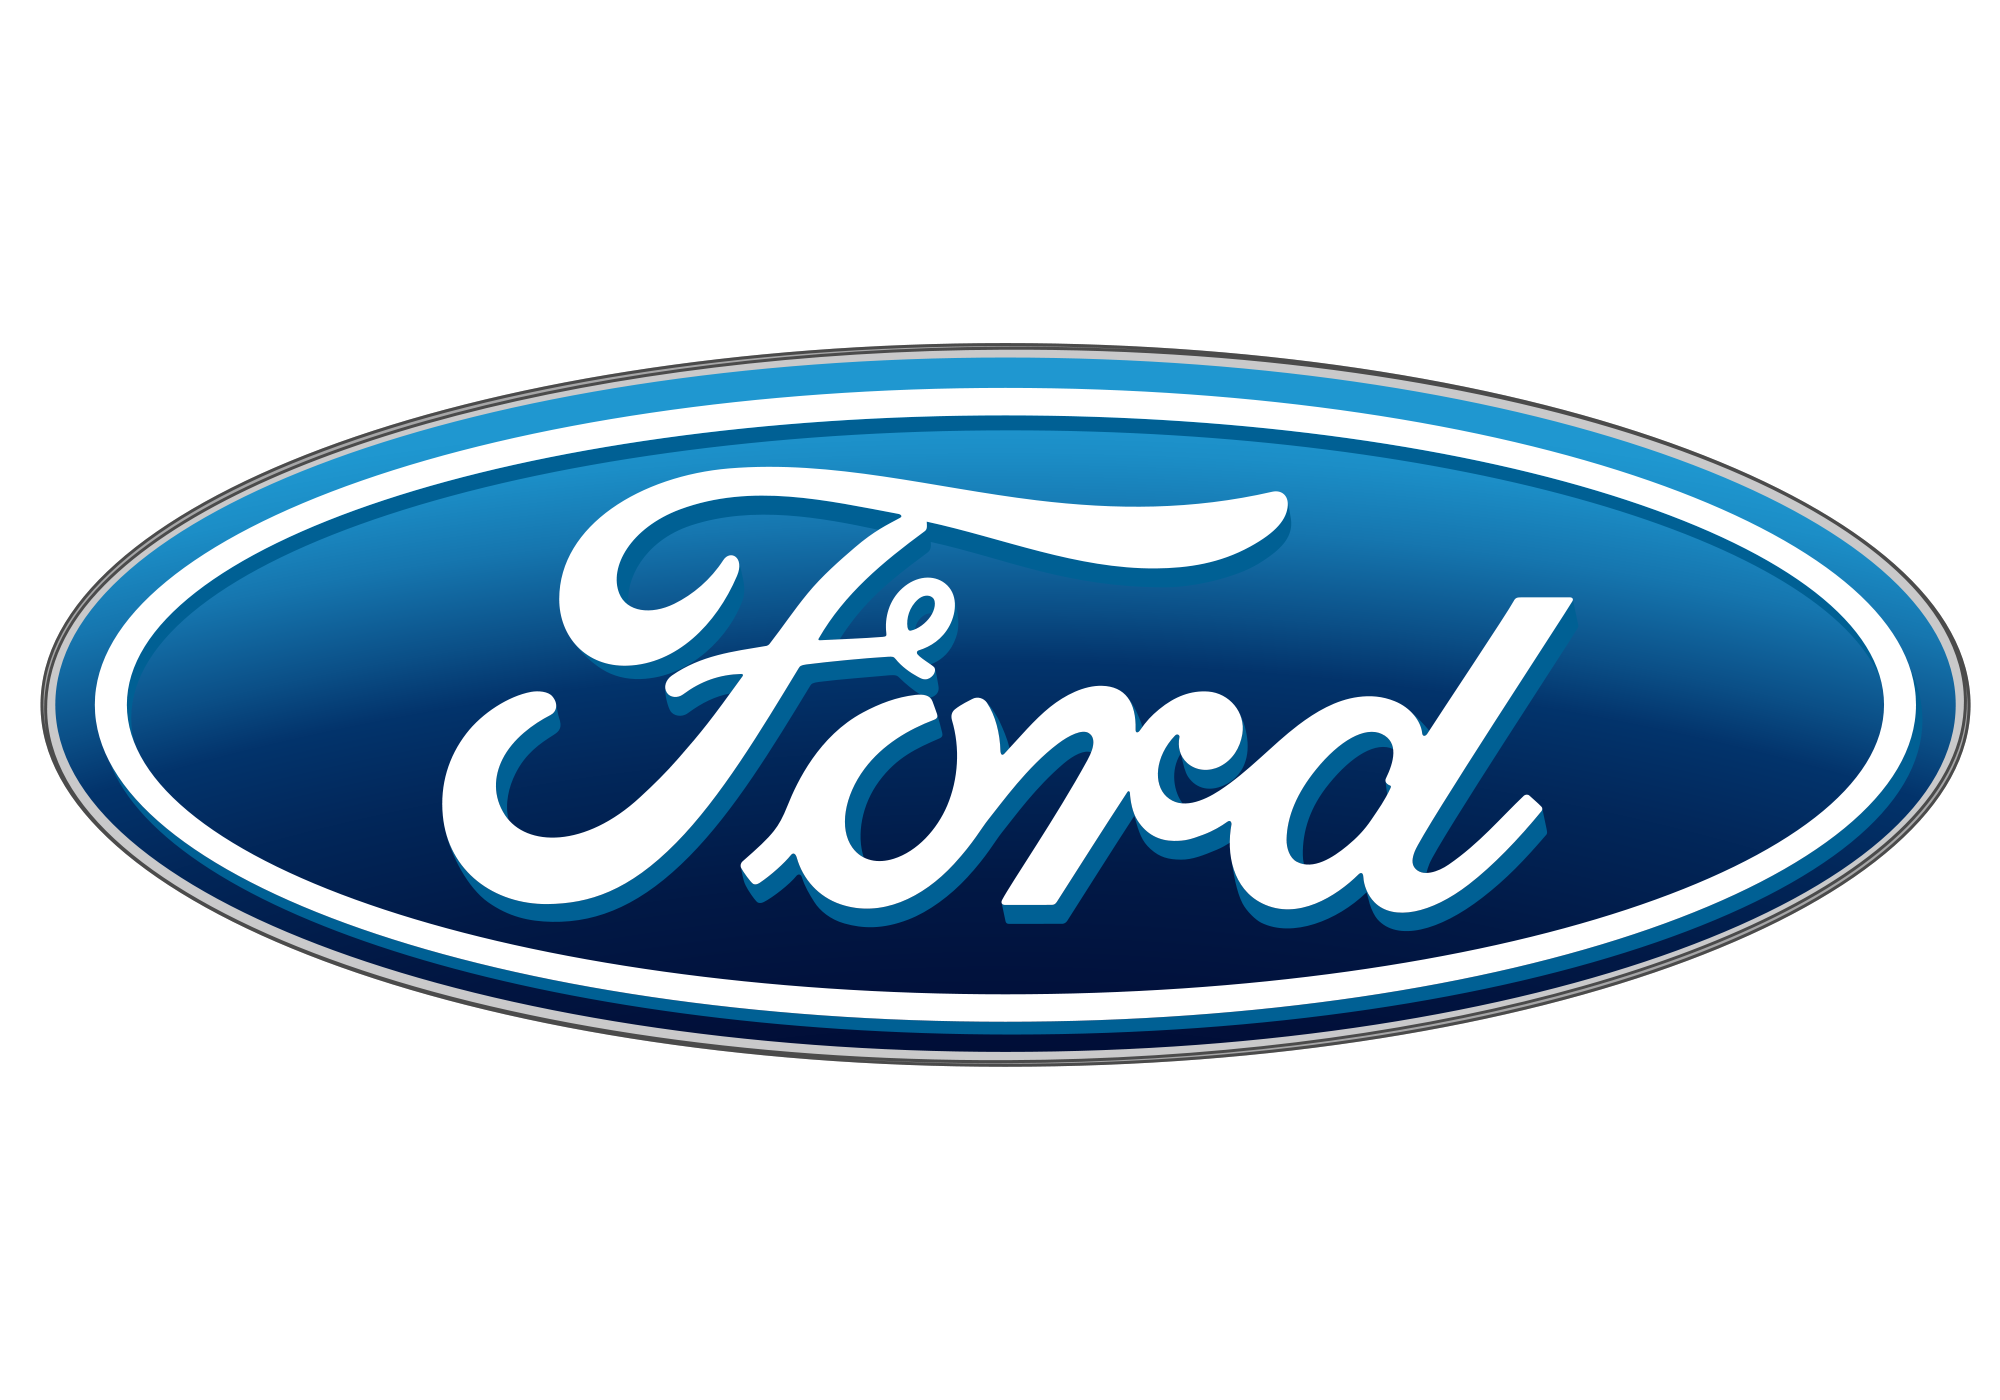 Ford Announces Plan to Invest Heavily in Electric Vehicles